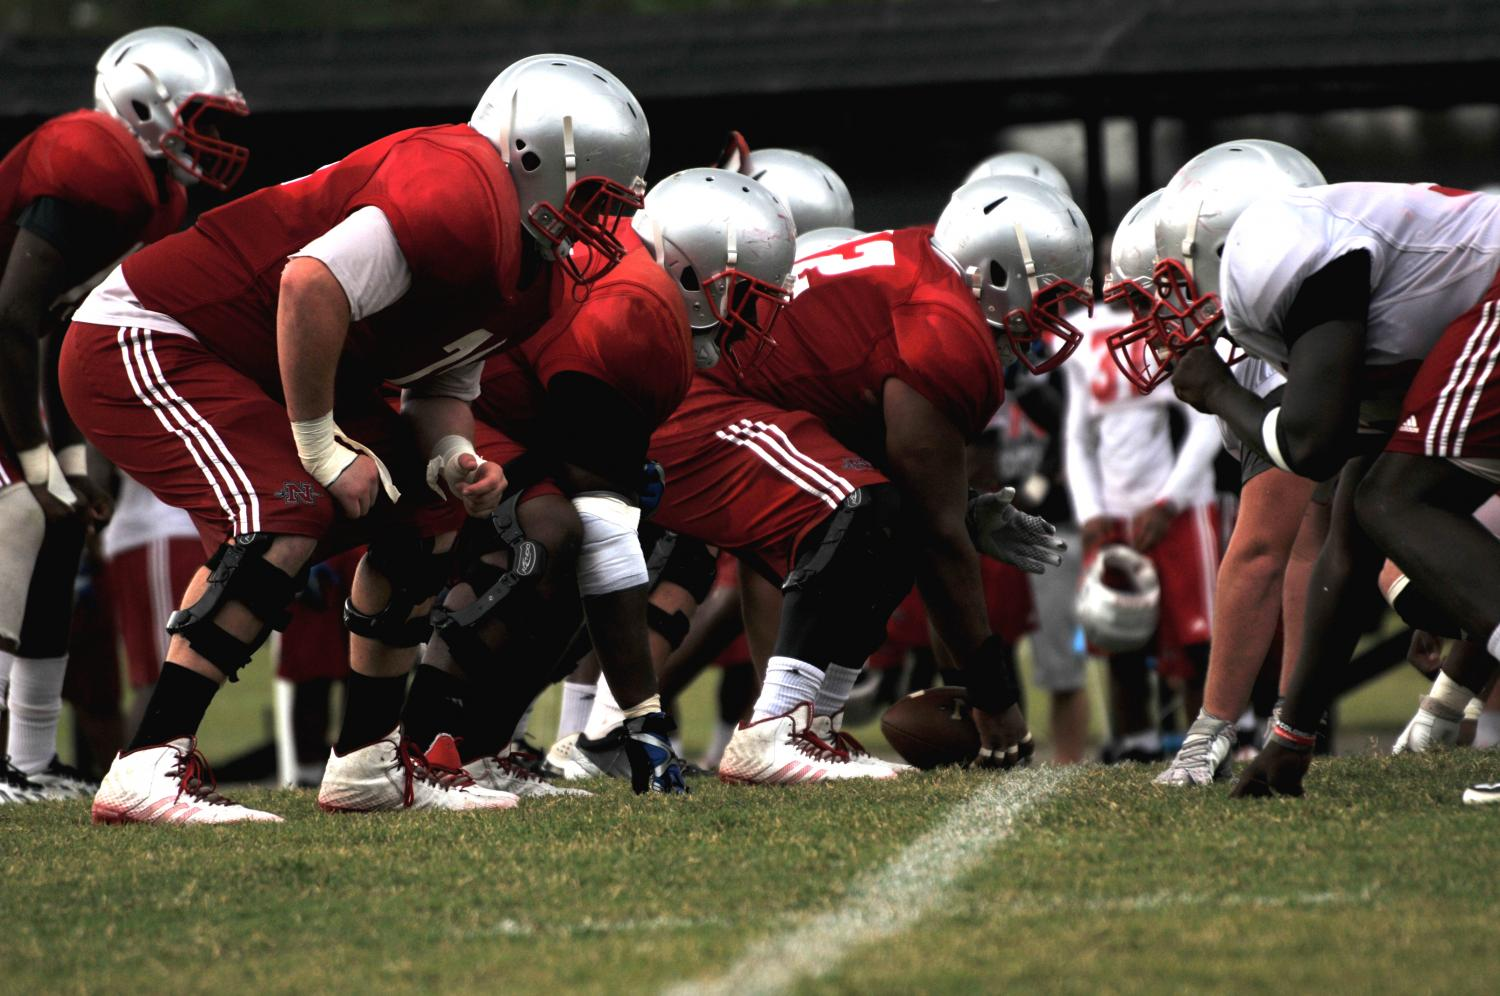 Offensive and defensive linemen get into formation on the line of scrimmage at afternoon practice on Tuesday, September 1.